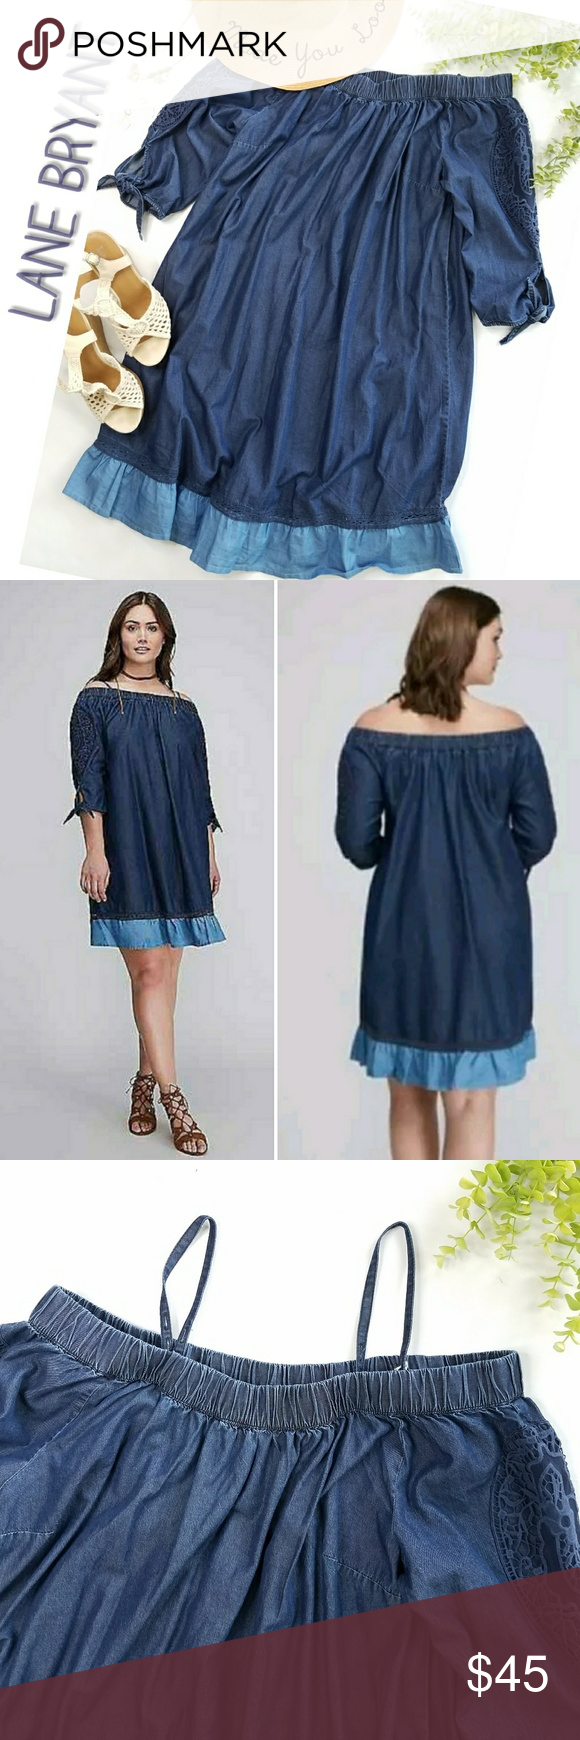 3fef170c889 NWT! LANE BRYANT denim chambray off shoulder dress Plus size chambray dress  perfect for spring